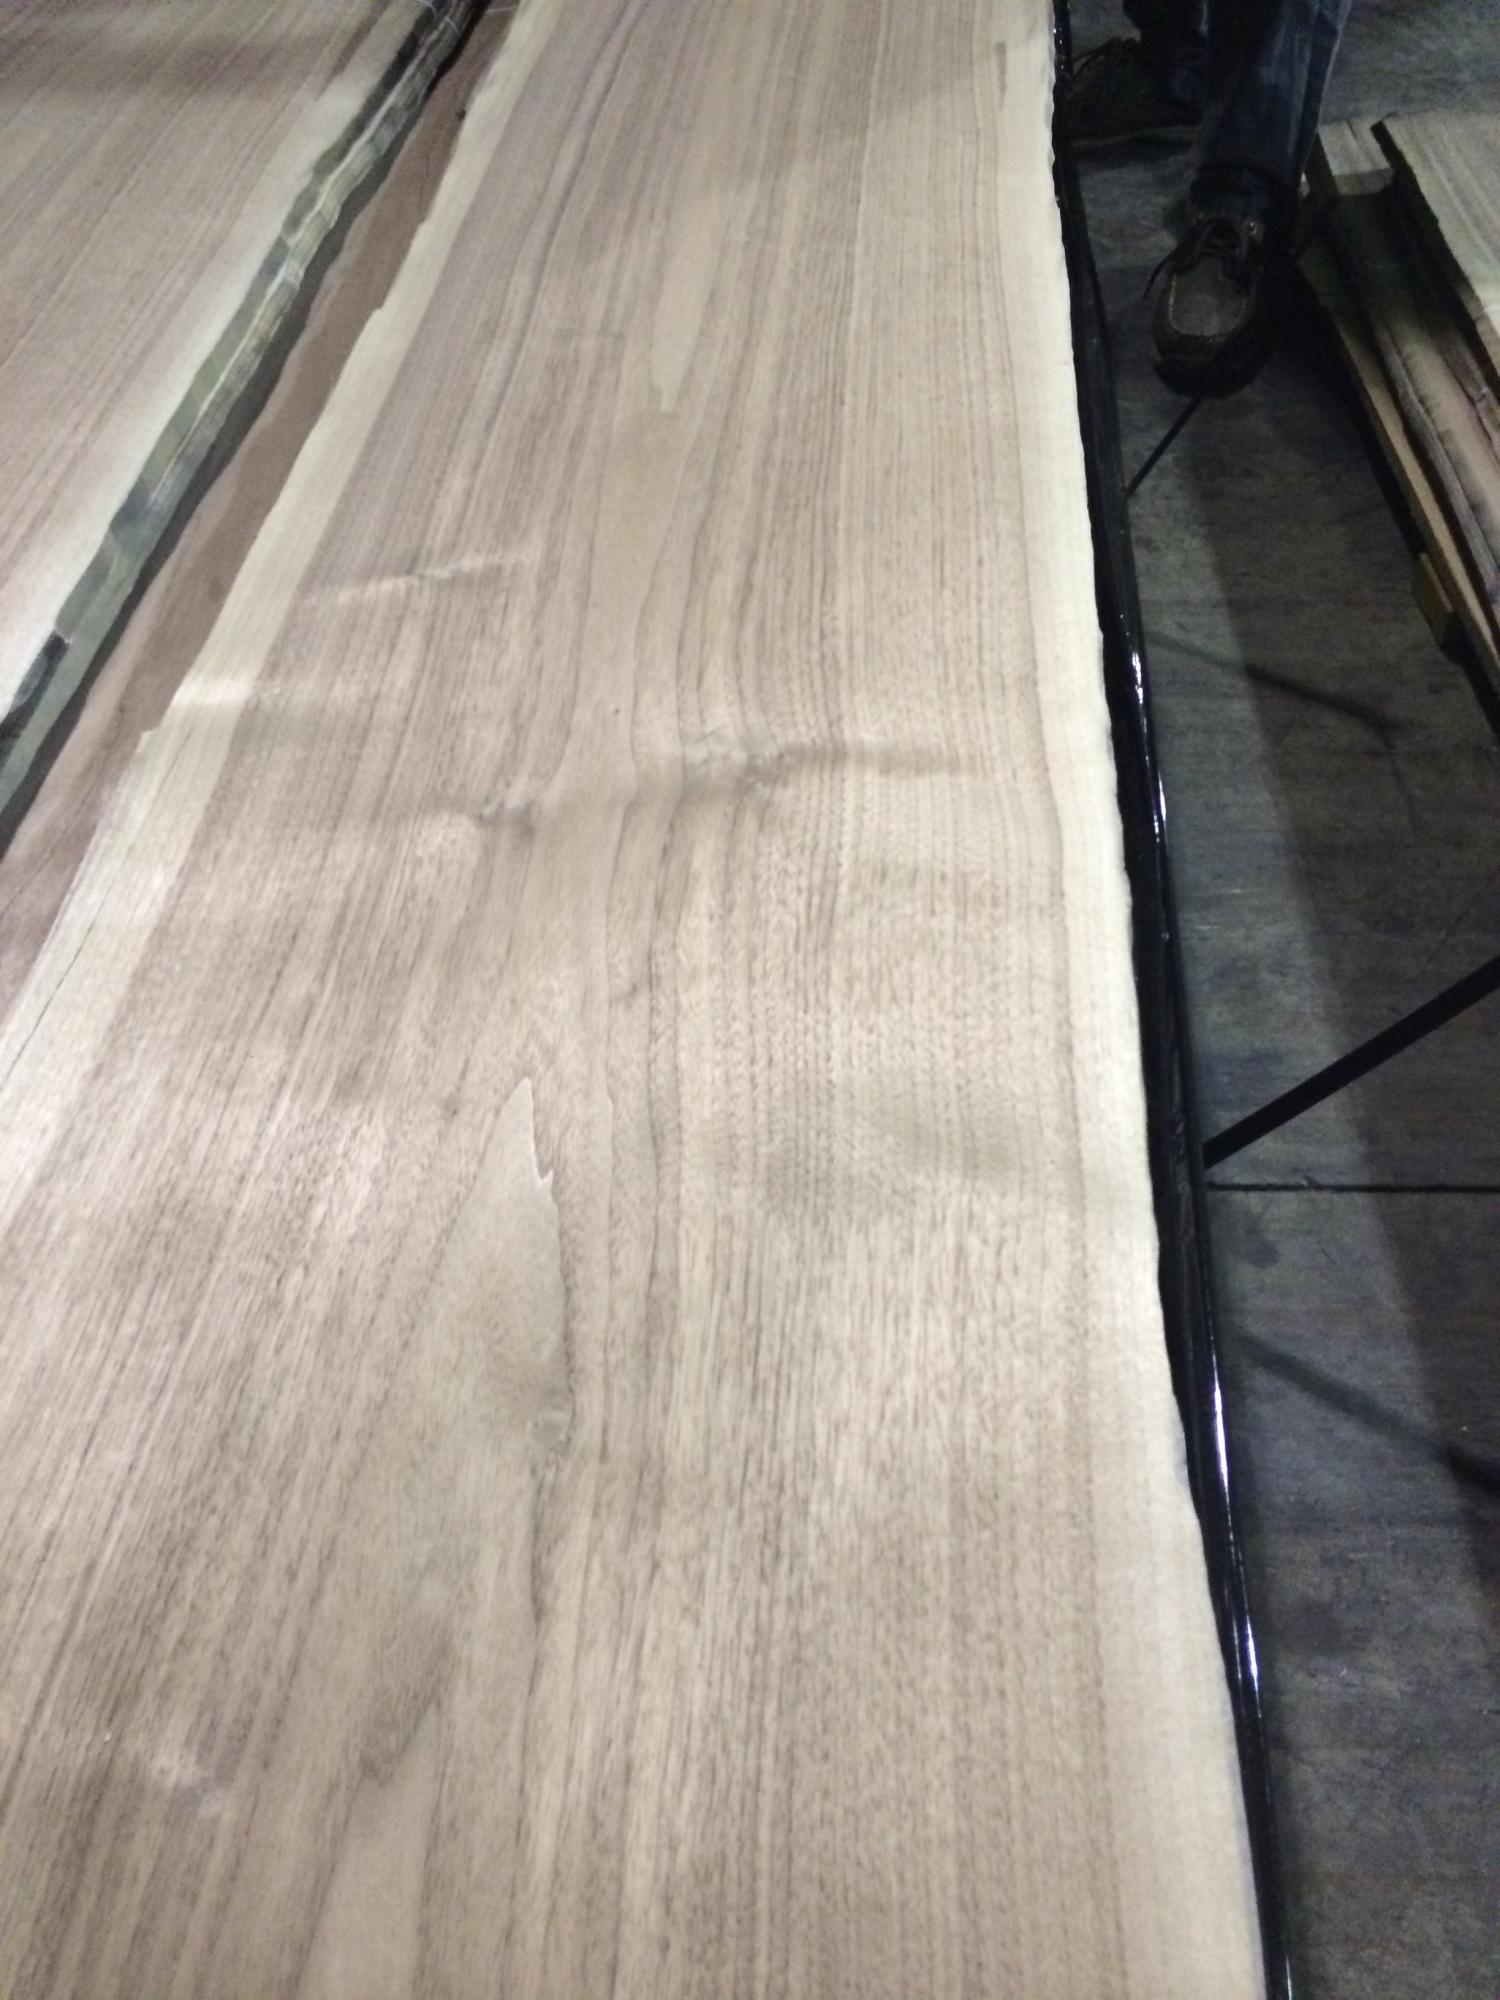 NCFP Walnut Furniture Veneer